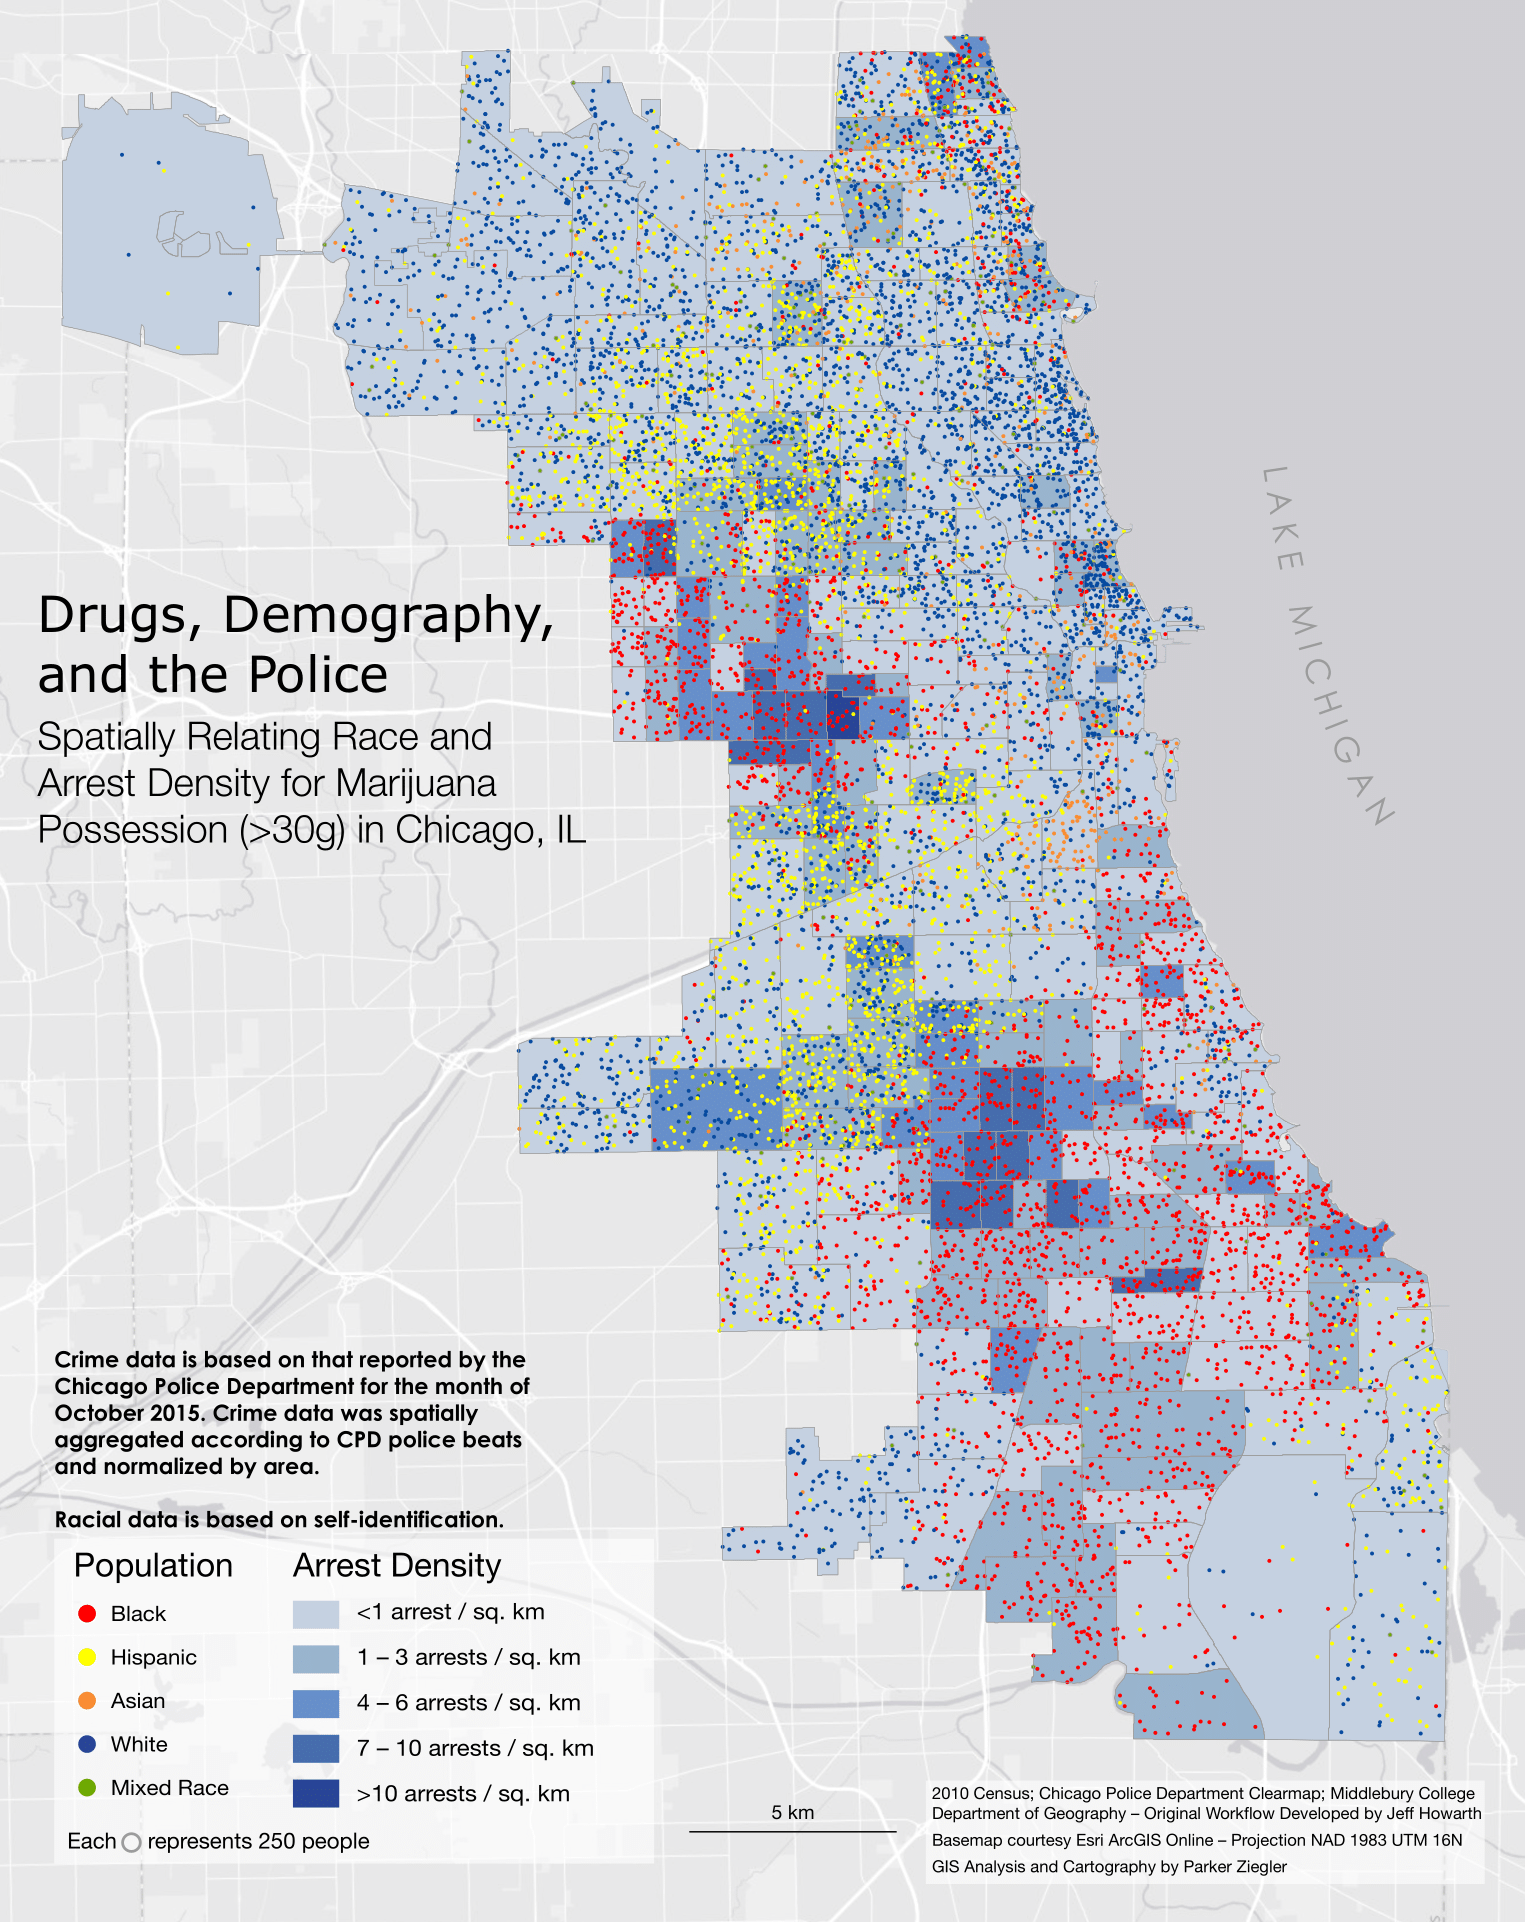 A map spatially correlating race and arrest density for possession of marijuana in Chicago, IL.